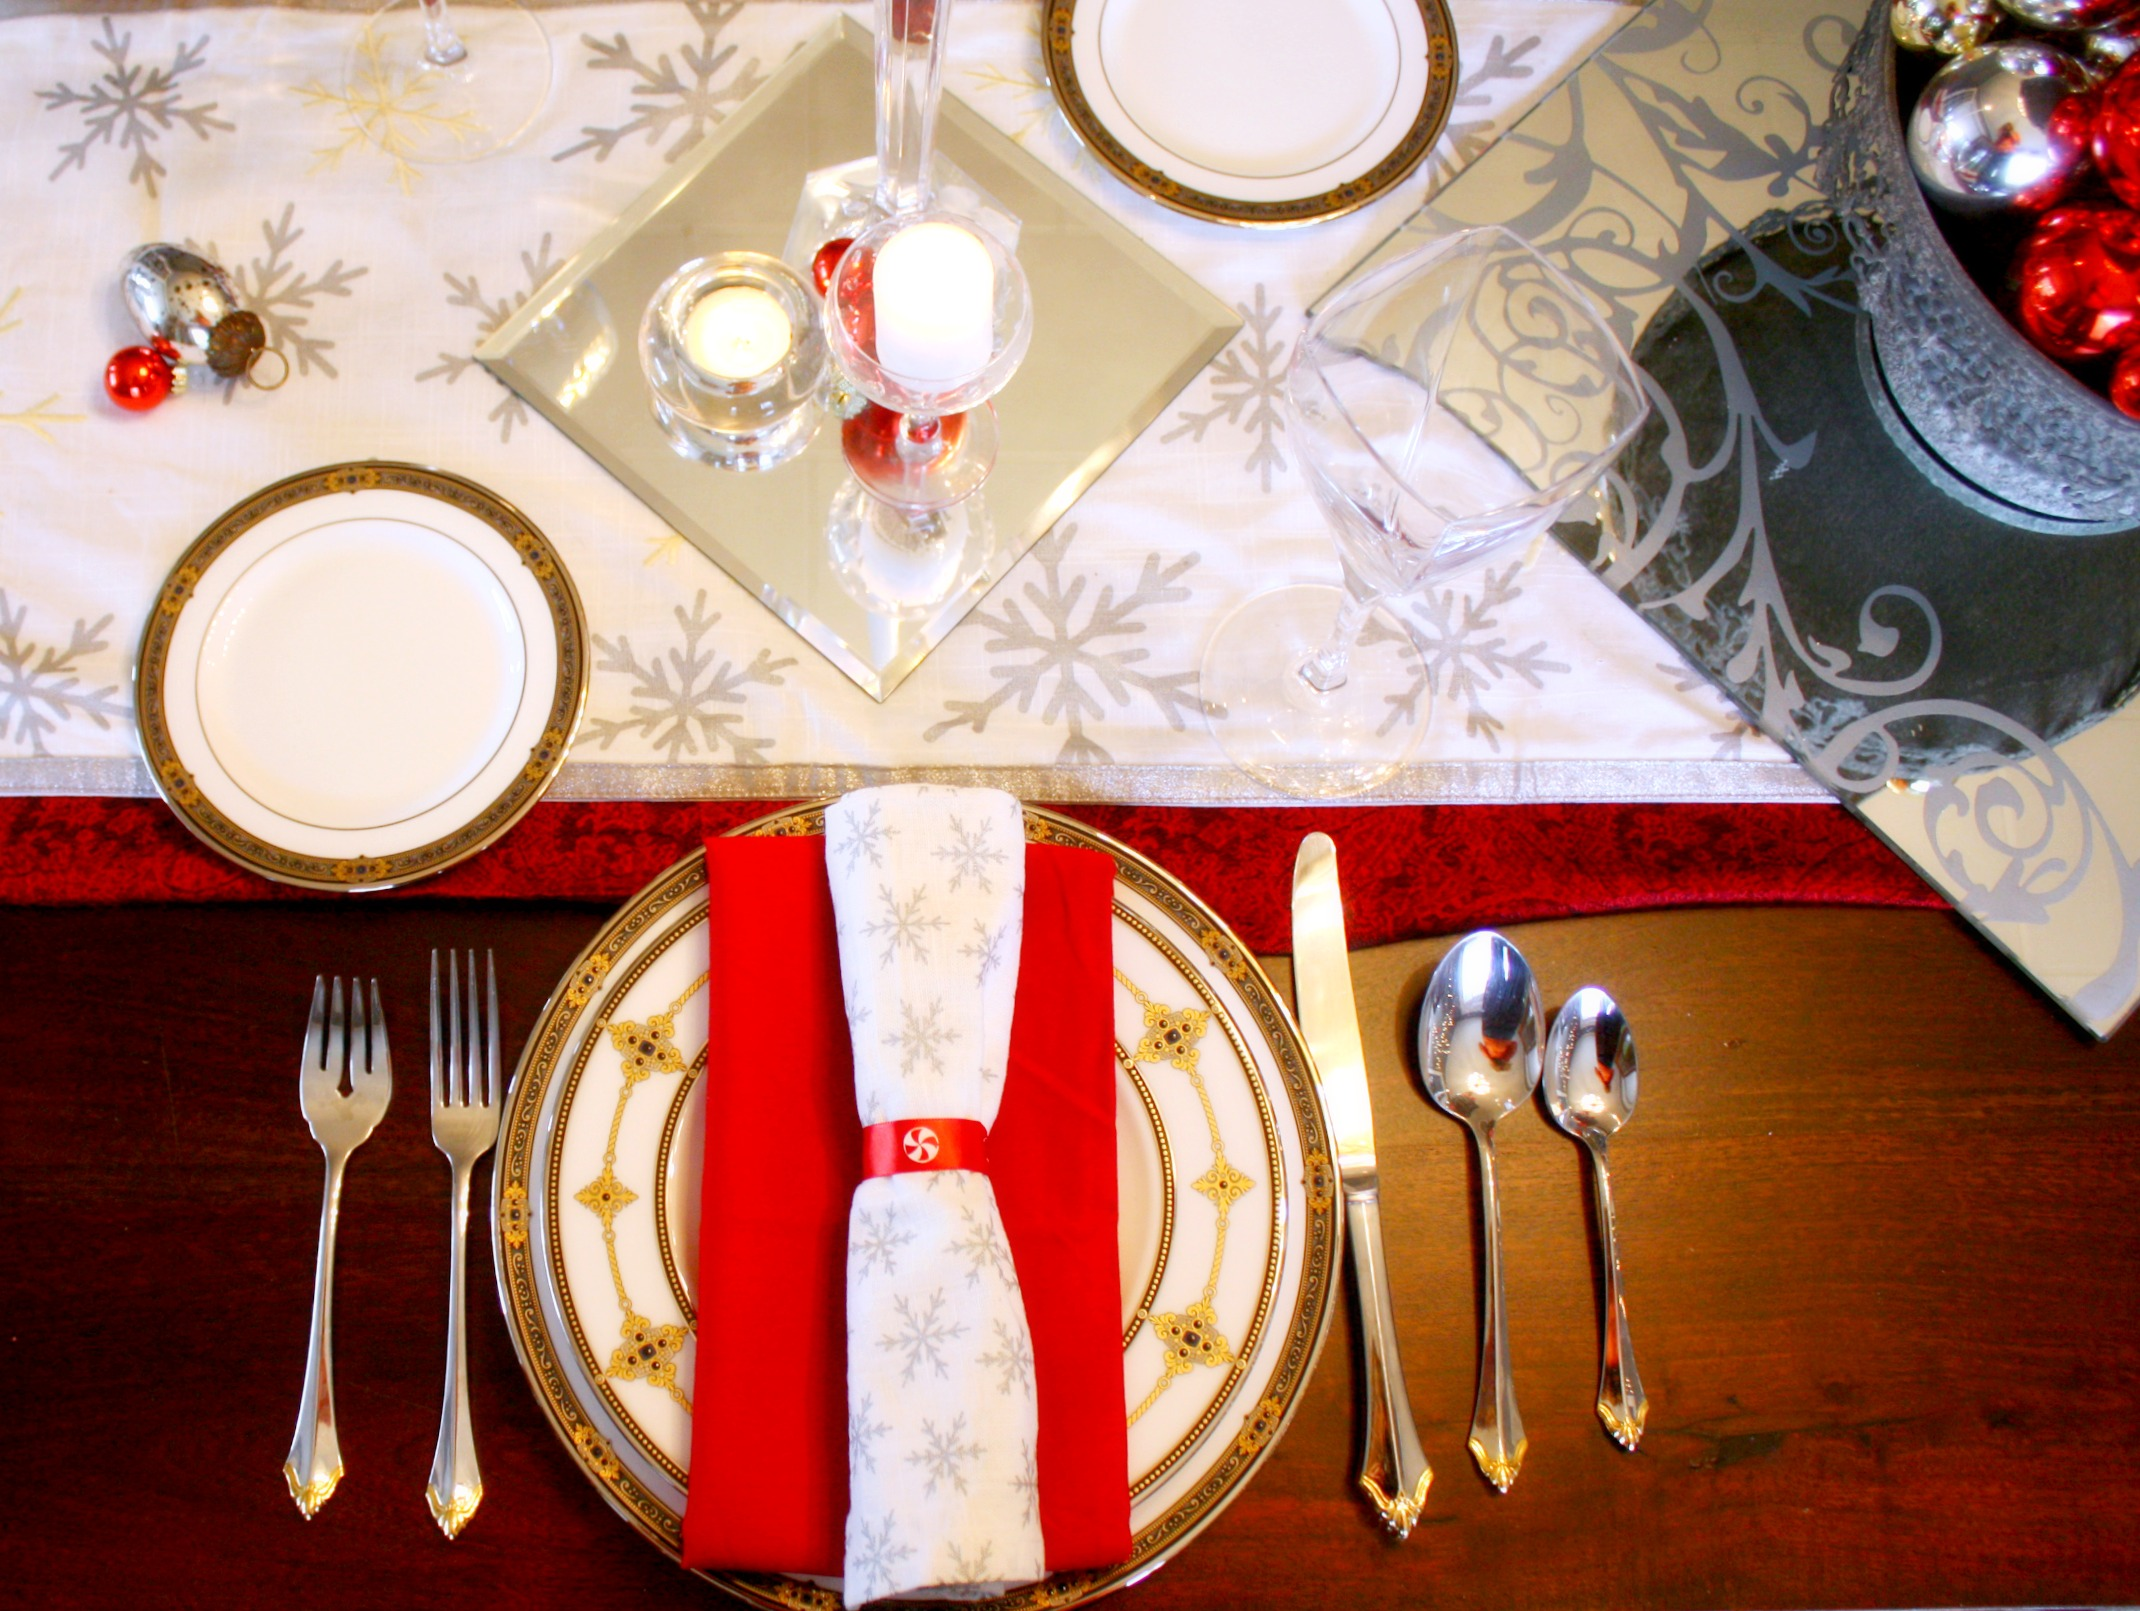 Setting a christmas table ideas - You Might Recognize Some Of These Tablescape Elements From Earlier Christmas Table